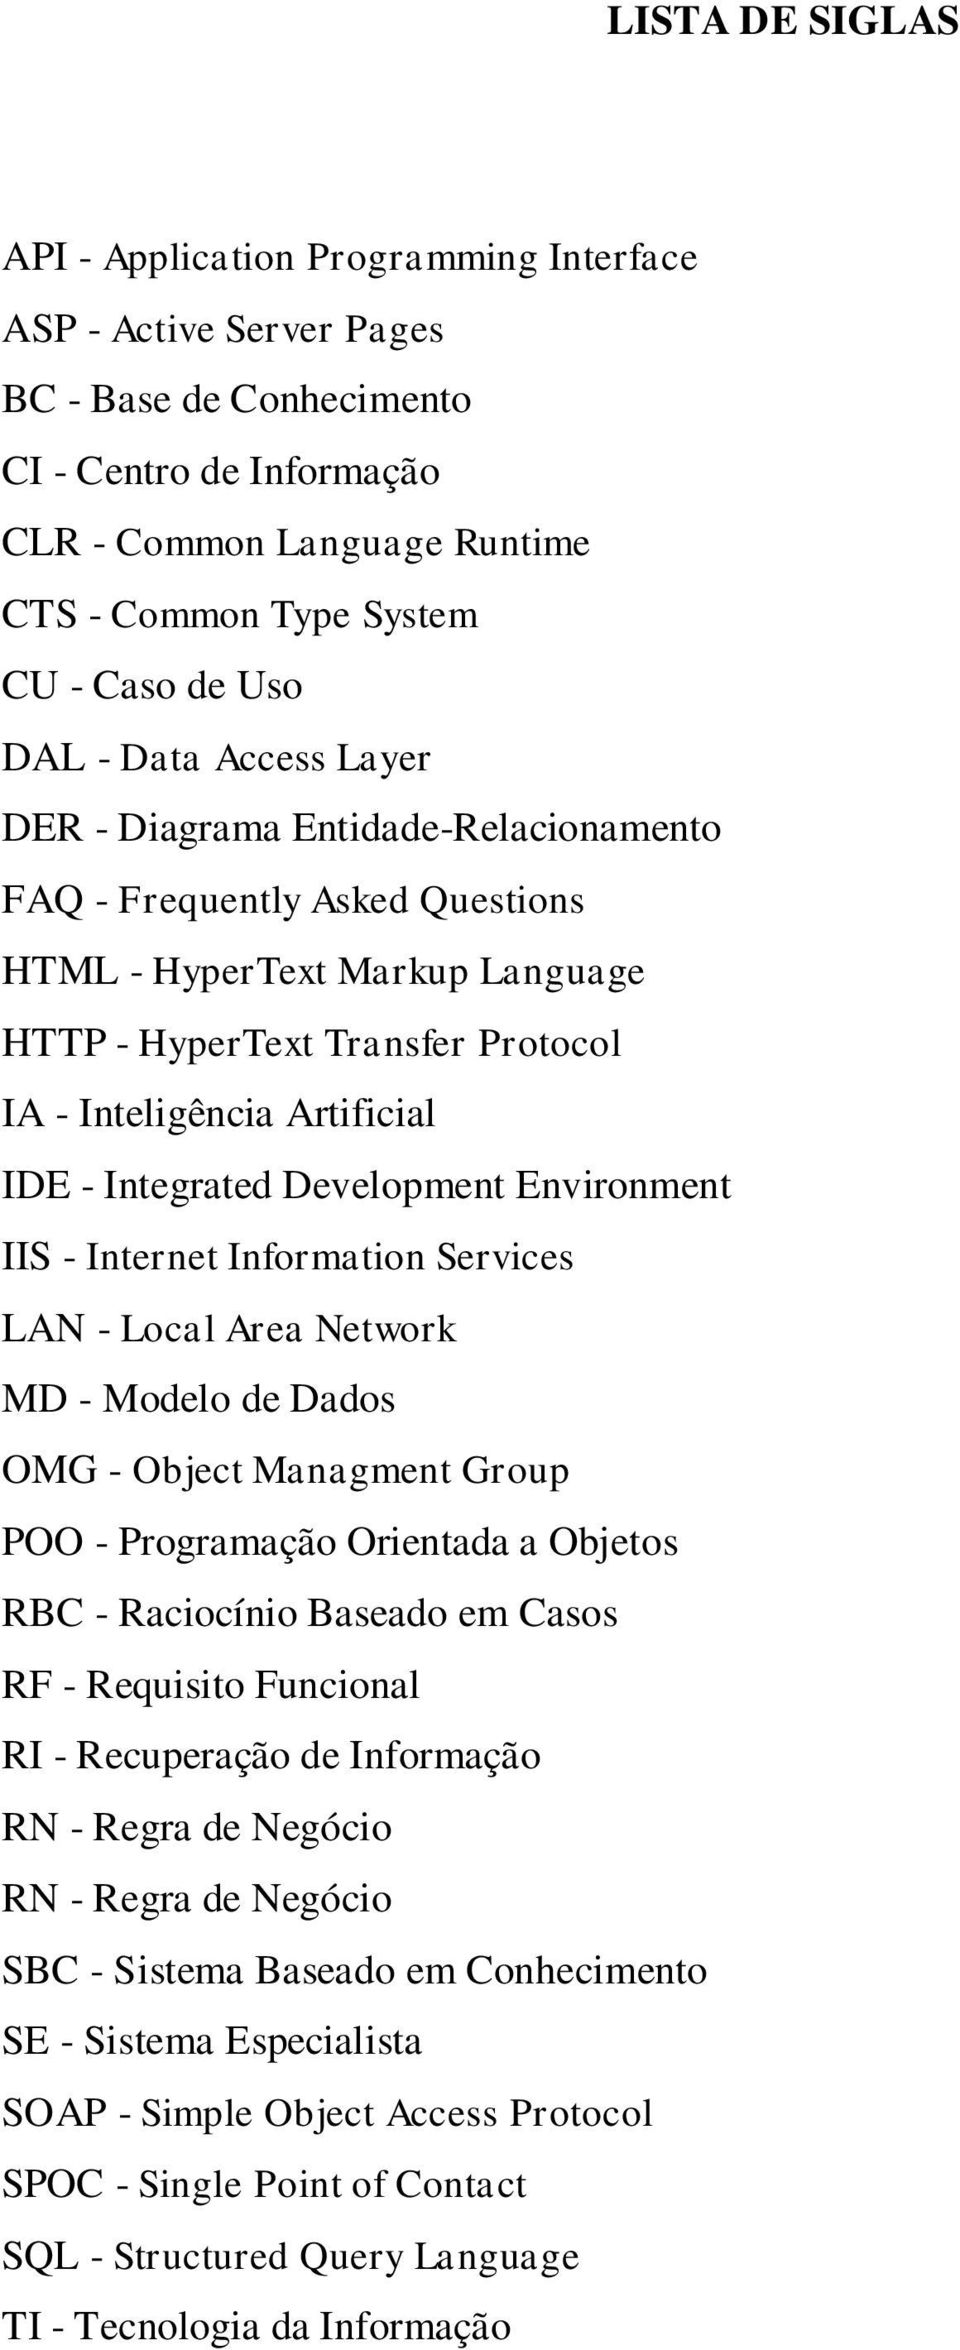 IDE - Integrated Development Environment IIS - Internet Information Services LAN - Local Area Network MD - Modelo de Dados OMG - Object Managment Group POO - Programação Orientada a Objetos RBC -